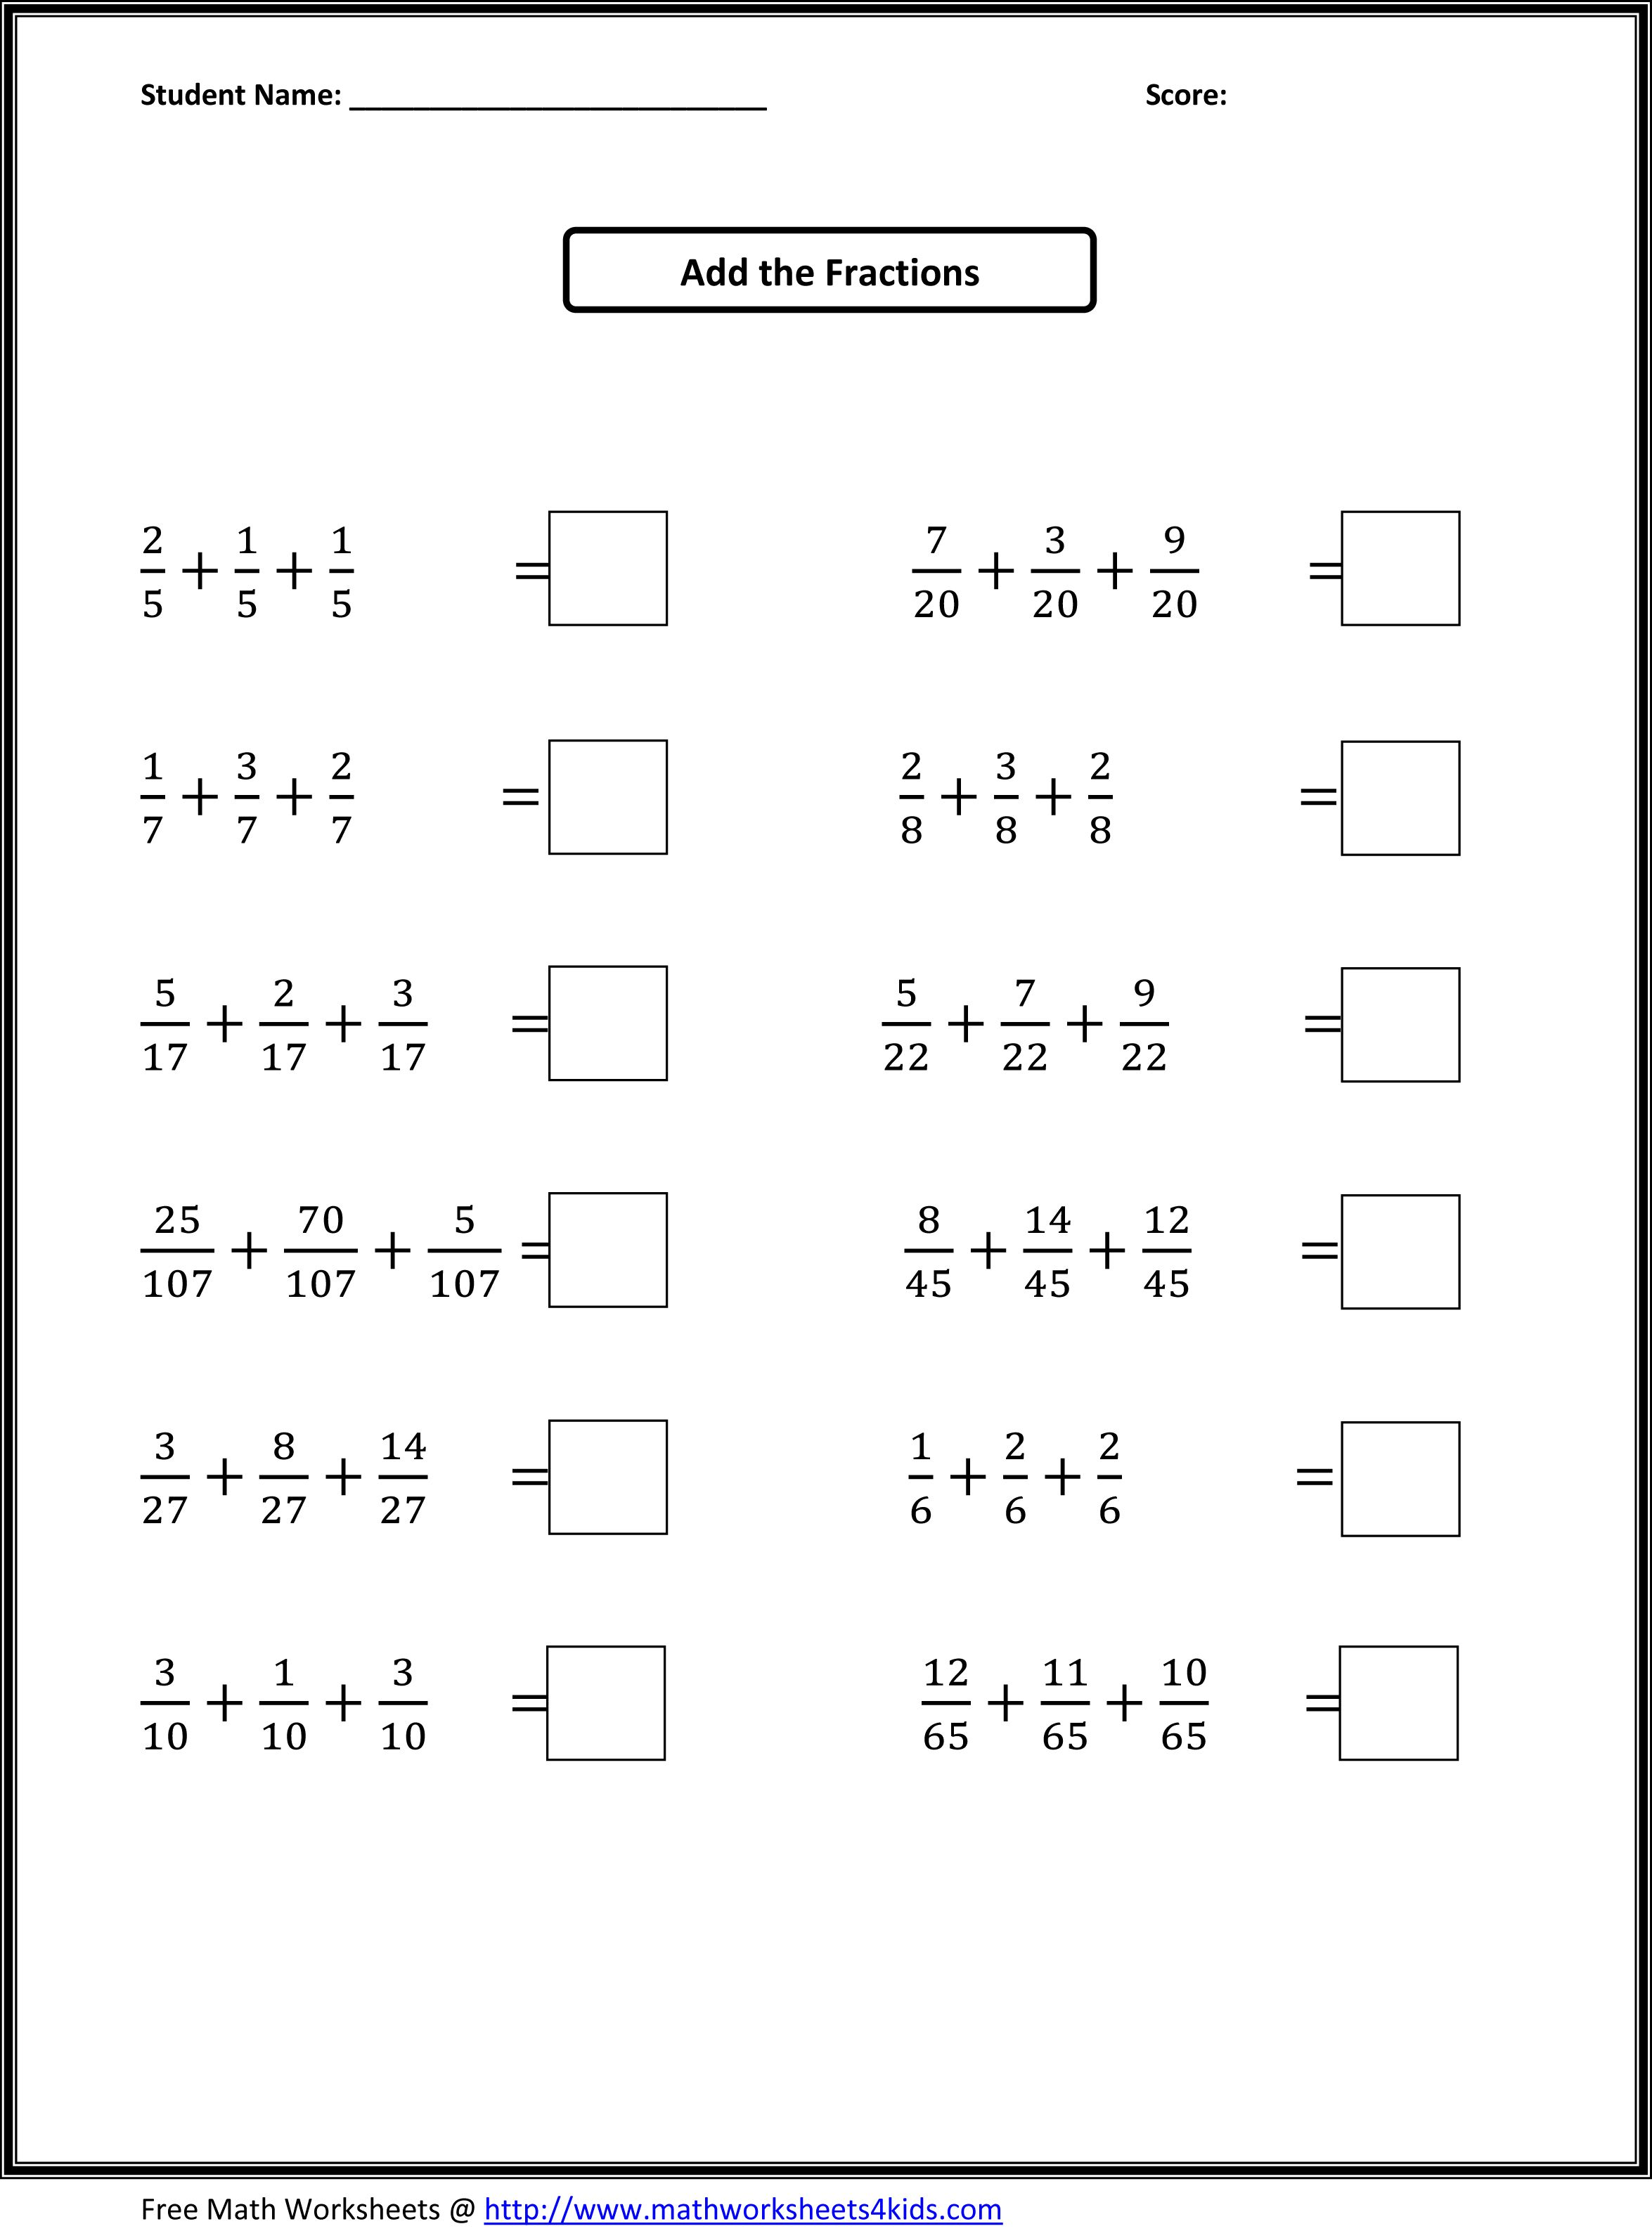 Worksheet Fraction Worksheets For Grade 5 math worksheets for grade 5 fractions coffemix pichaglobal improper fraction intrepidpath